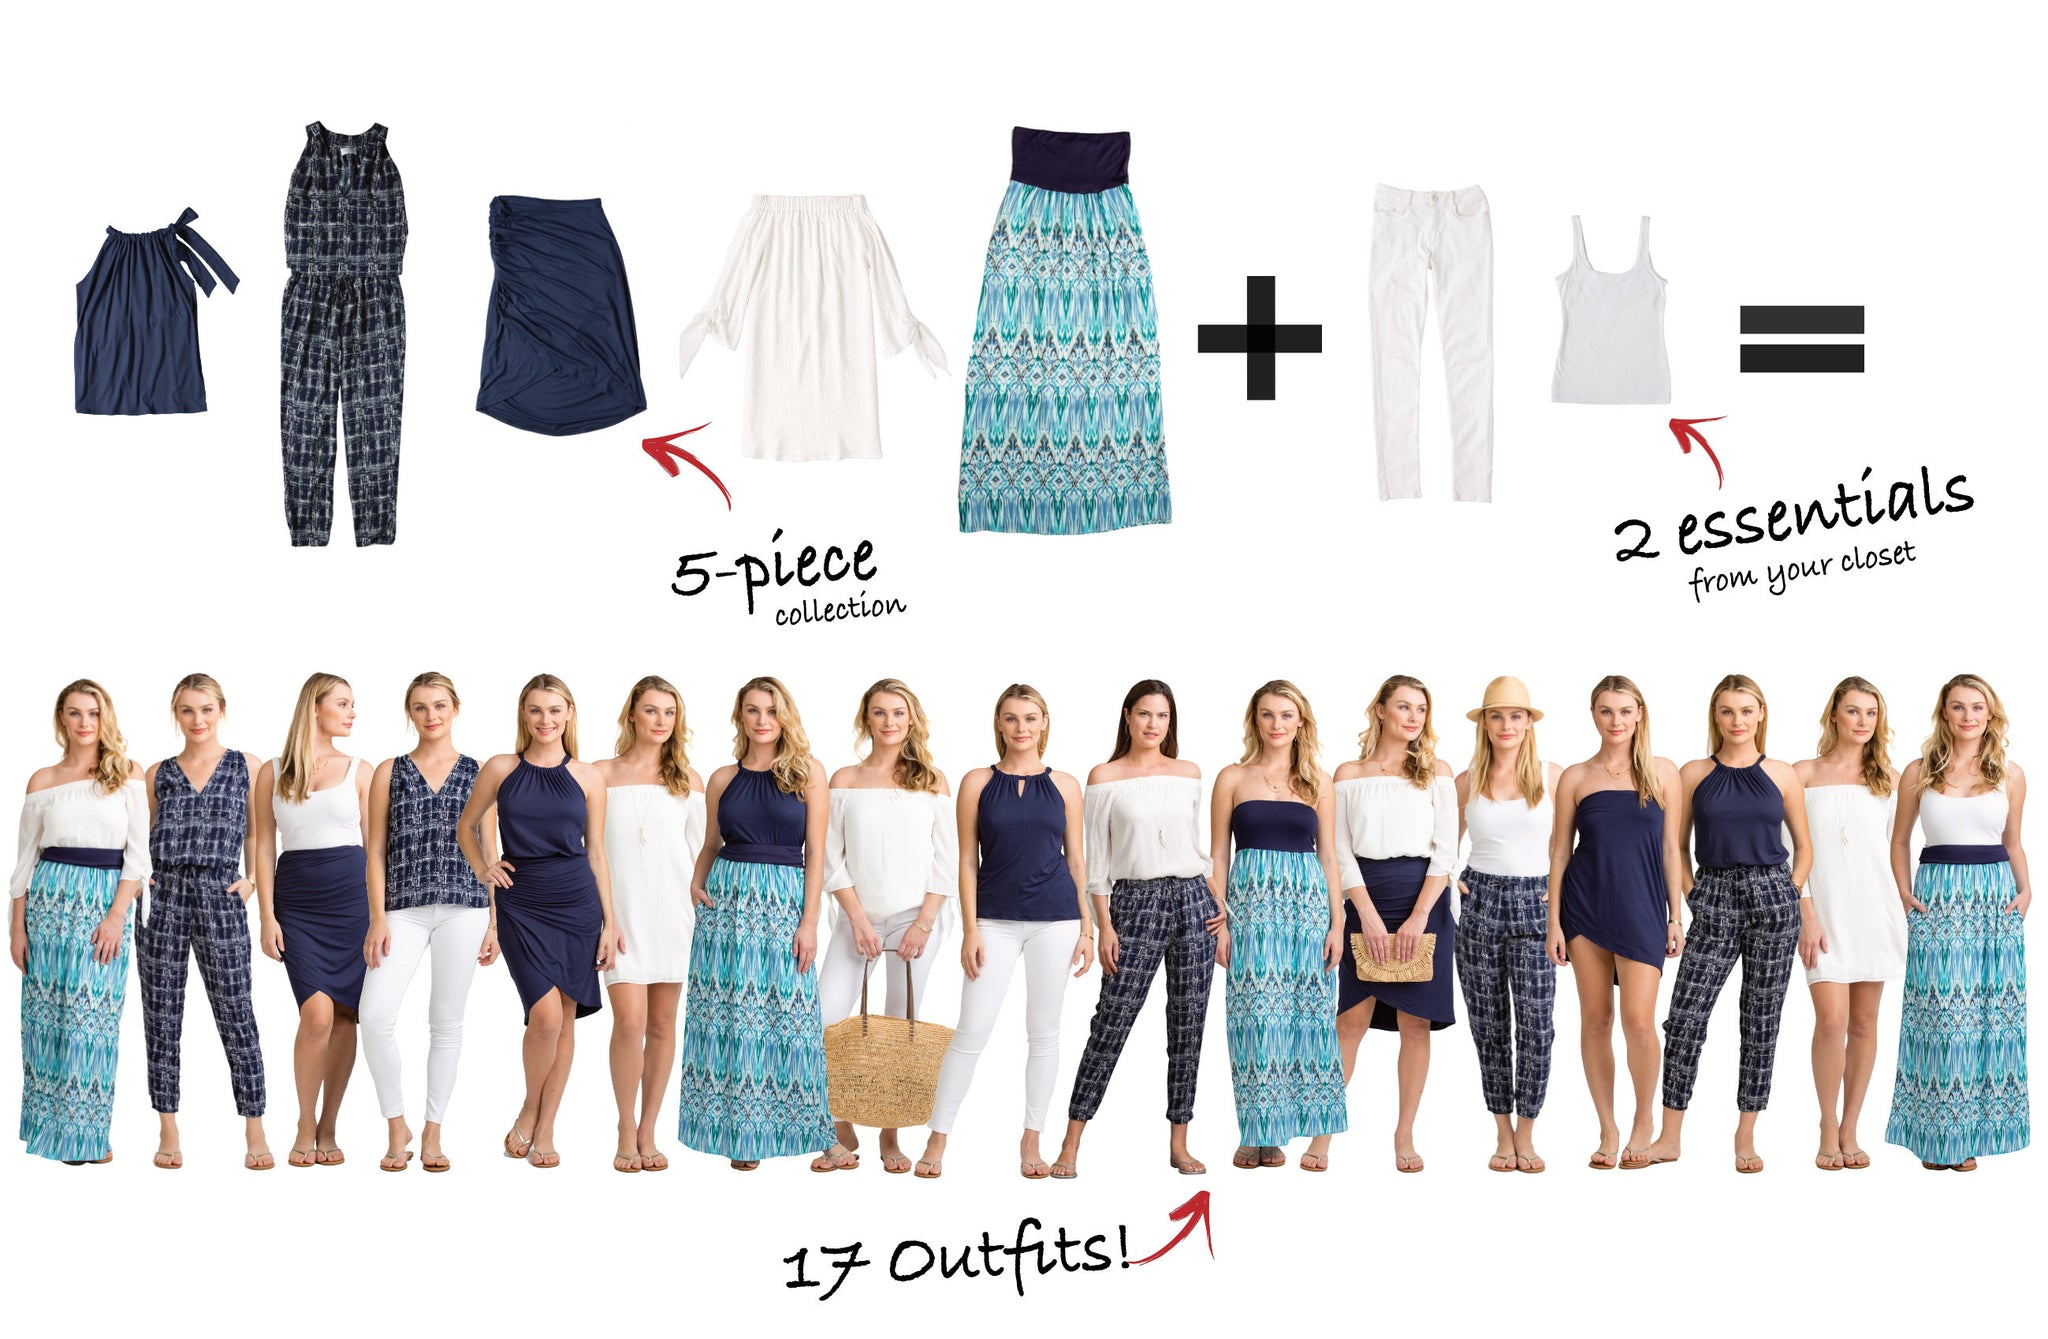 Scottsdale Collection: 5 items = 17 outfits